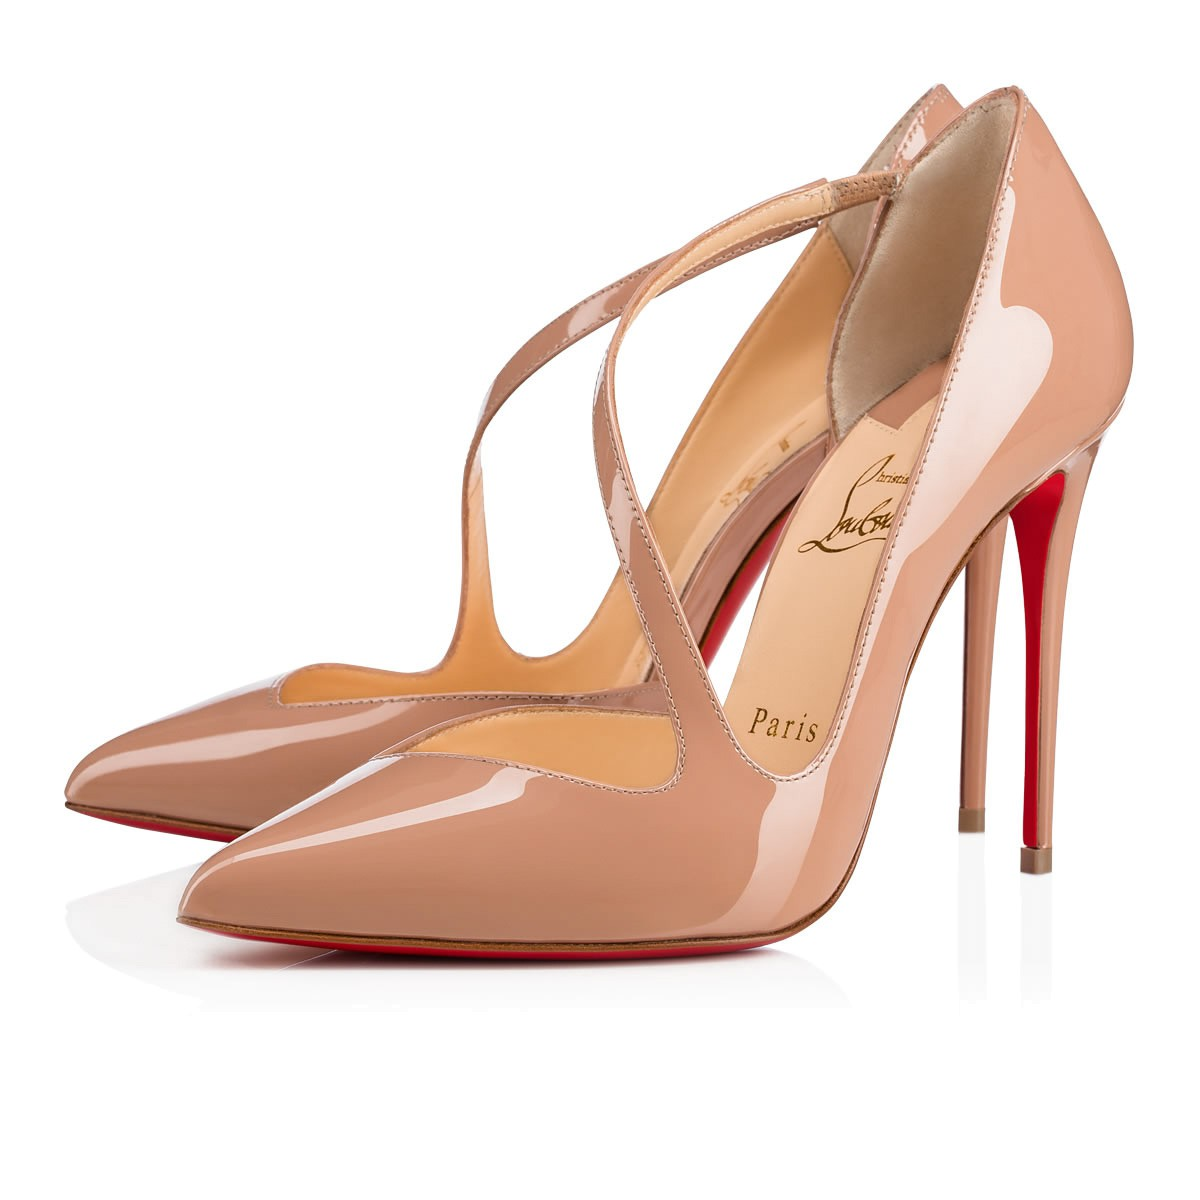 low priced c7da5 8bb0d Jumping 100 Nude Patent Leather - Women Shoes - Christian Louboutin